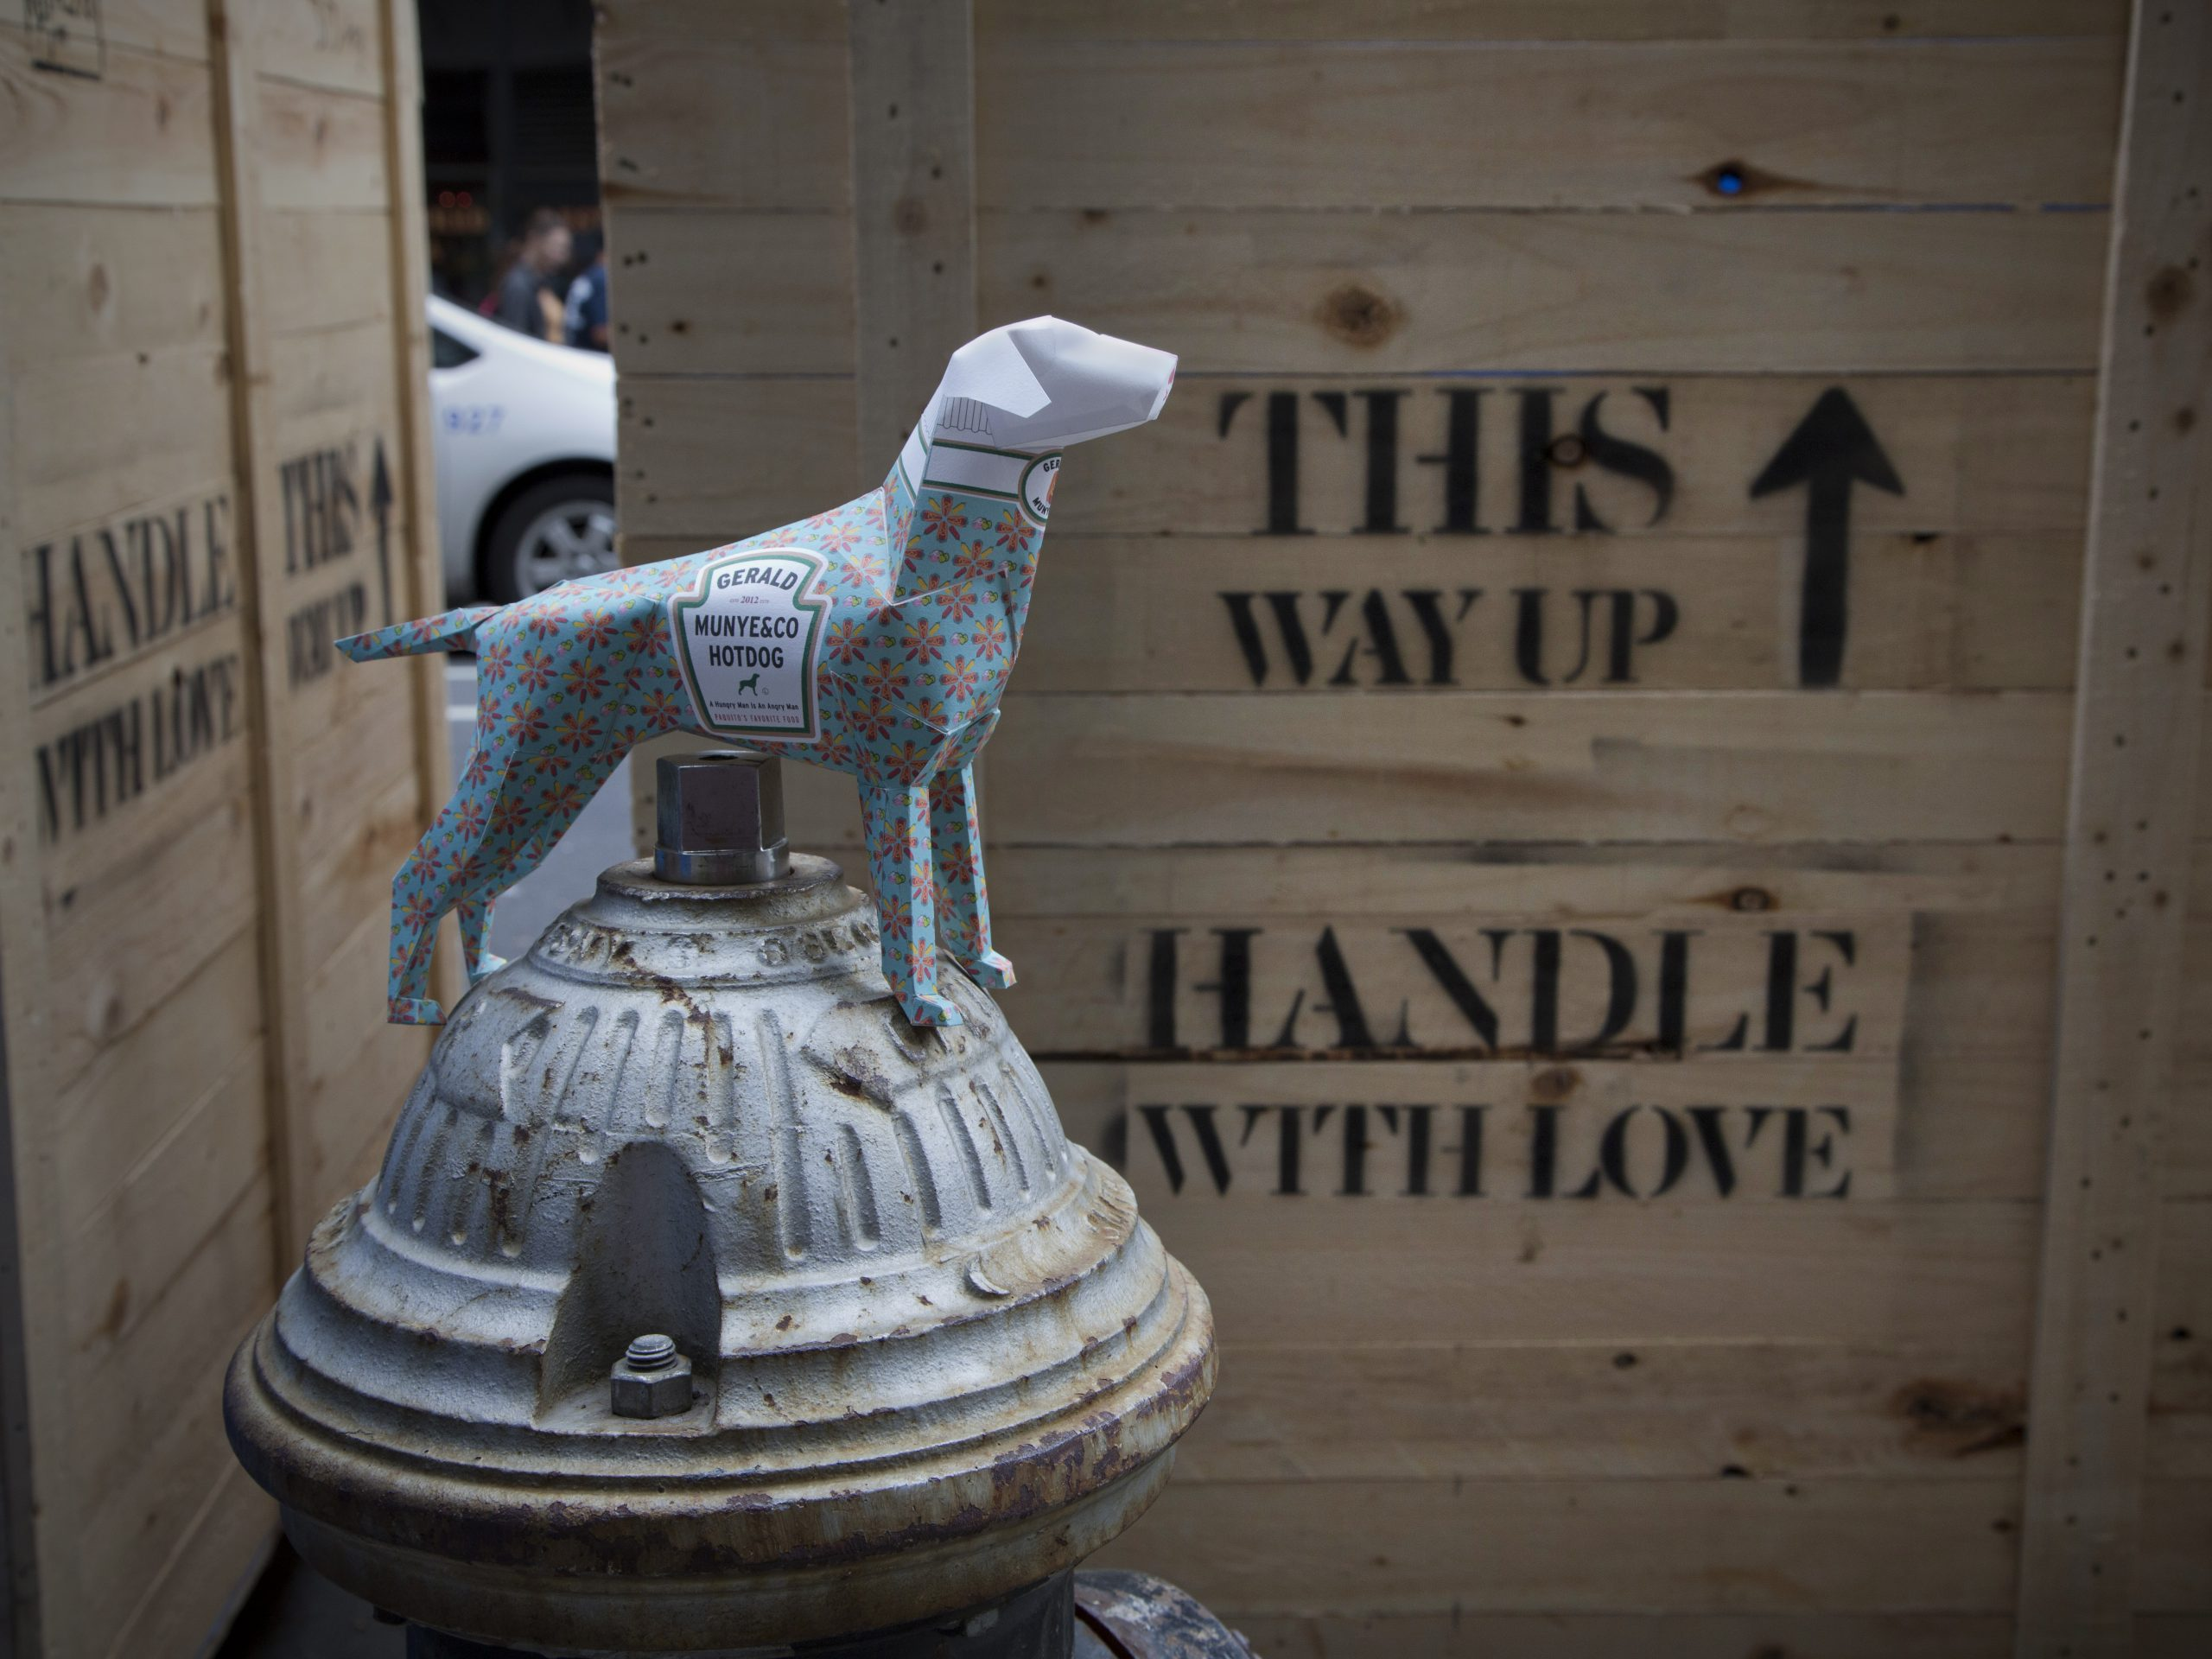 A 3D paper dog model sat on a New York water hydrant with wooden crate boxes in the background with 'This way Up and a upwards arrow sign. It also handle with care stenciled on the wooden box.